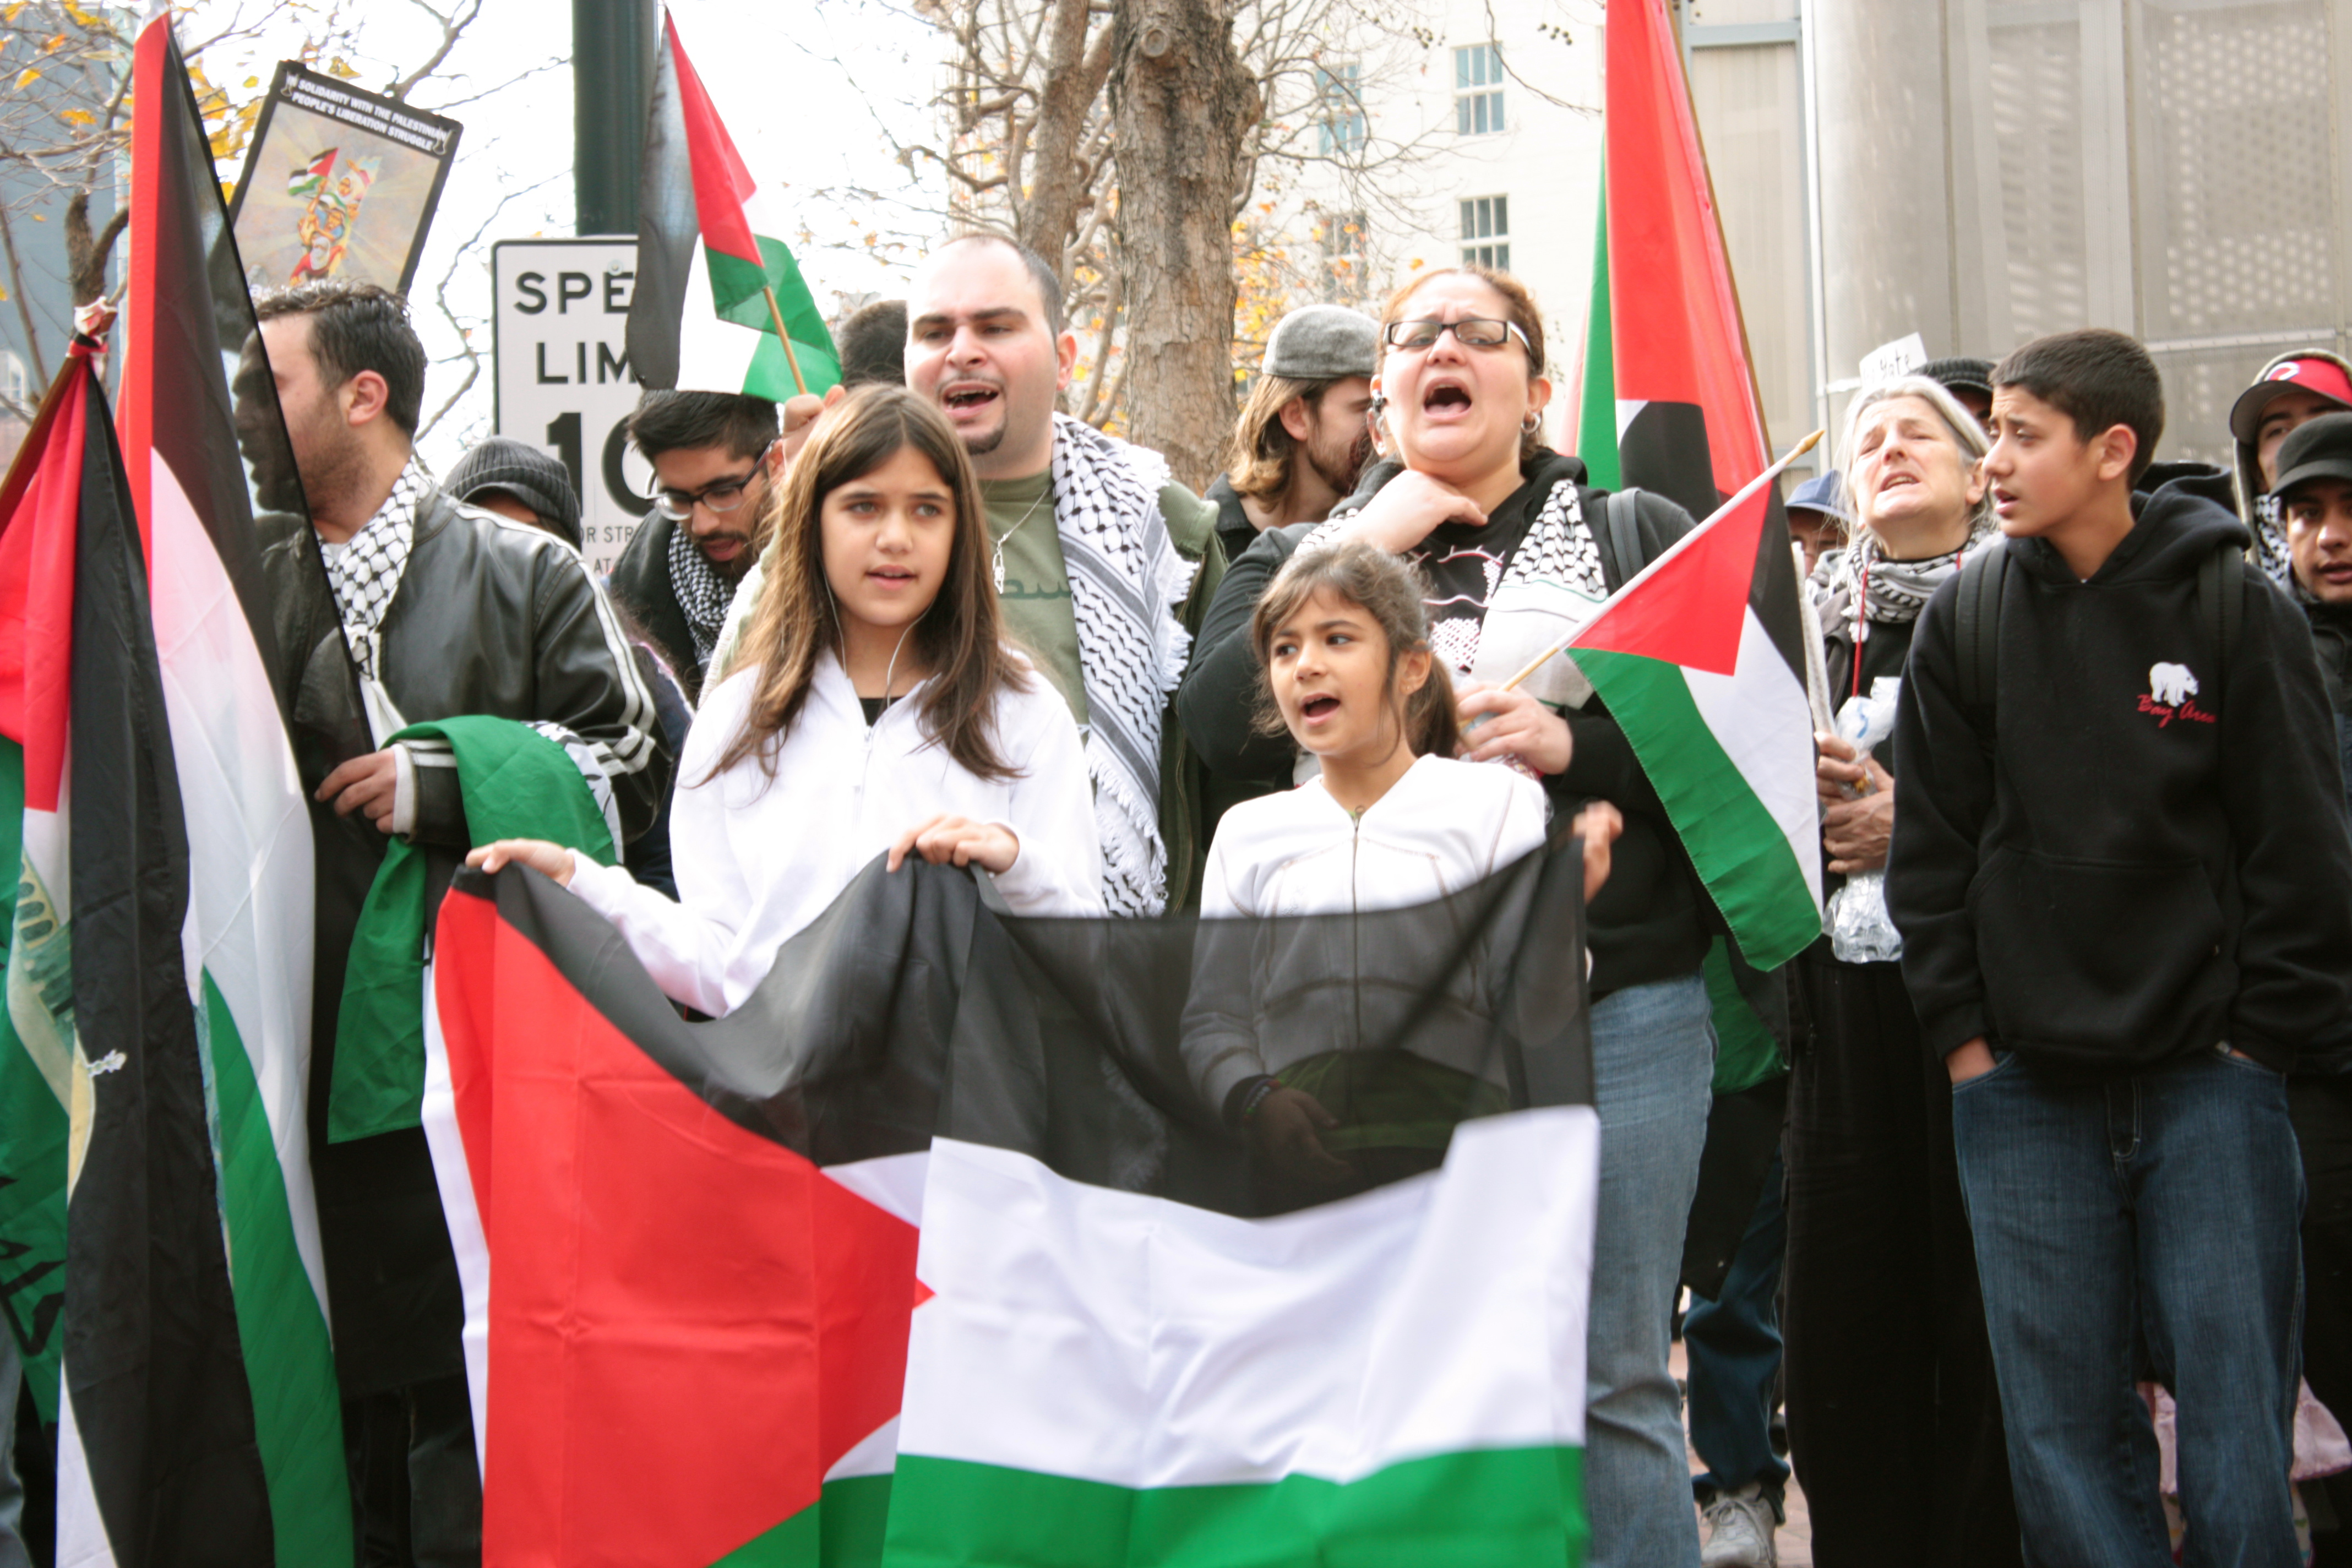 A solidarity with Gaza rally in San Francisco on the corner of Market and Powell St. which I attended.  Photo by Uda Olabarria Walker